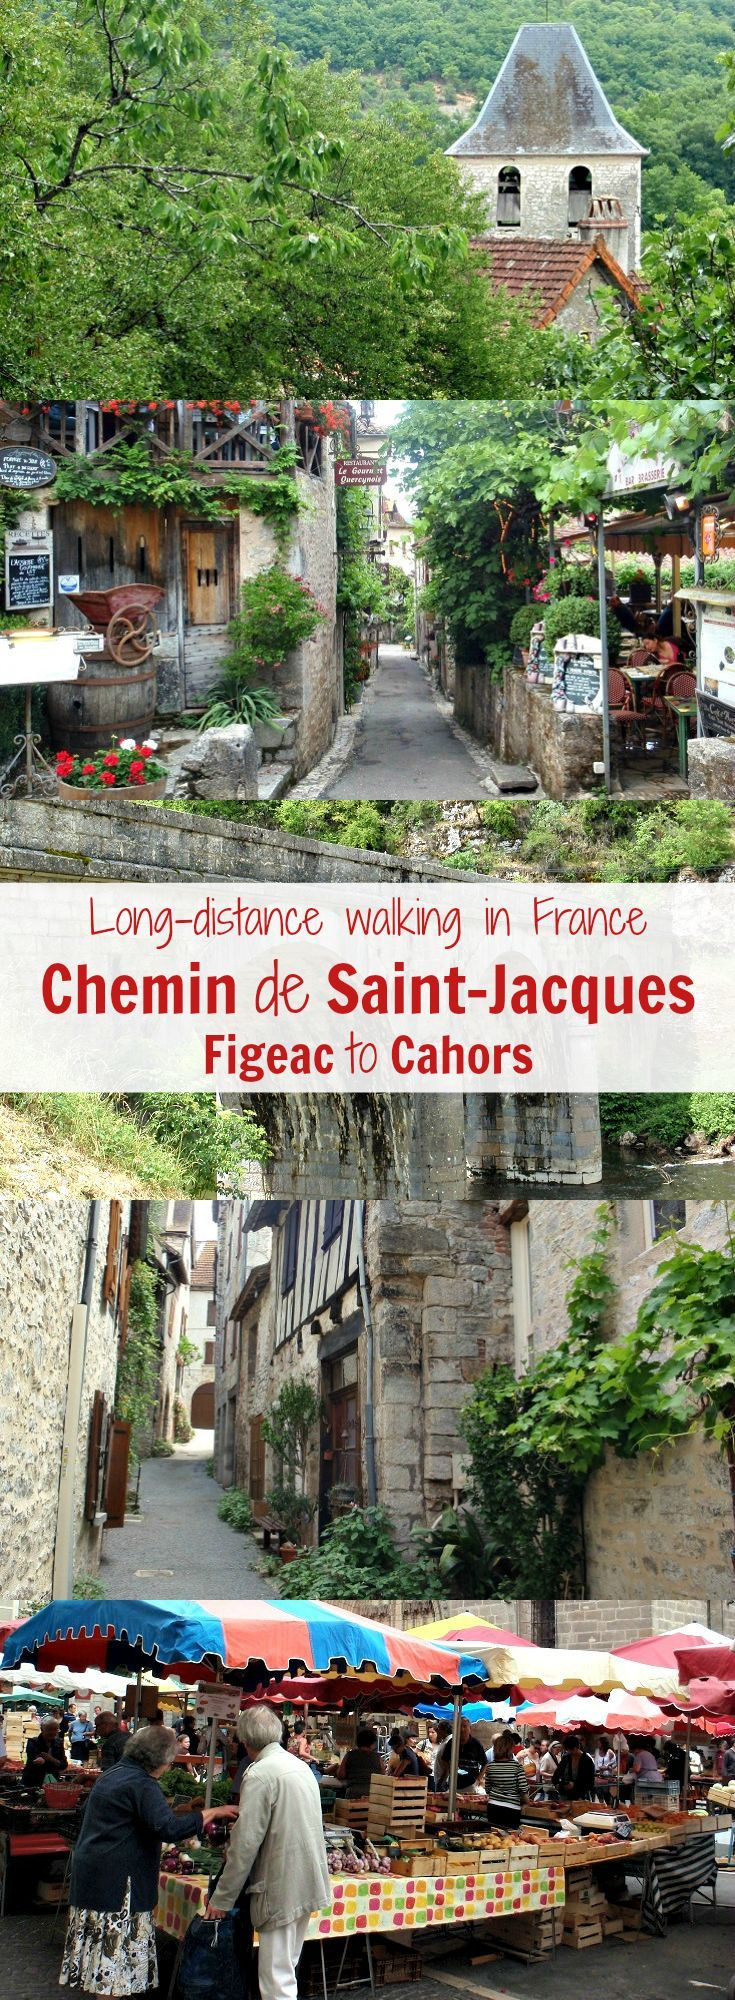 Discover France on a long-distance walk along the Chemin de Saint-Jacques from Figeac to Cahors